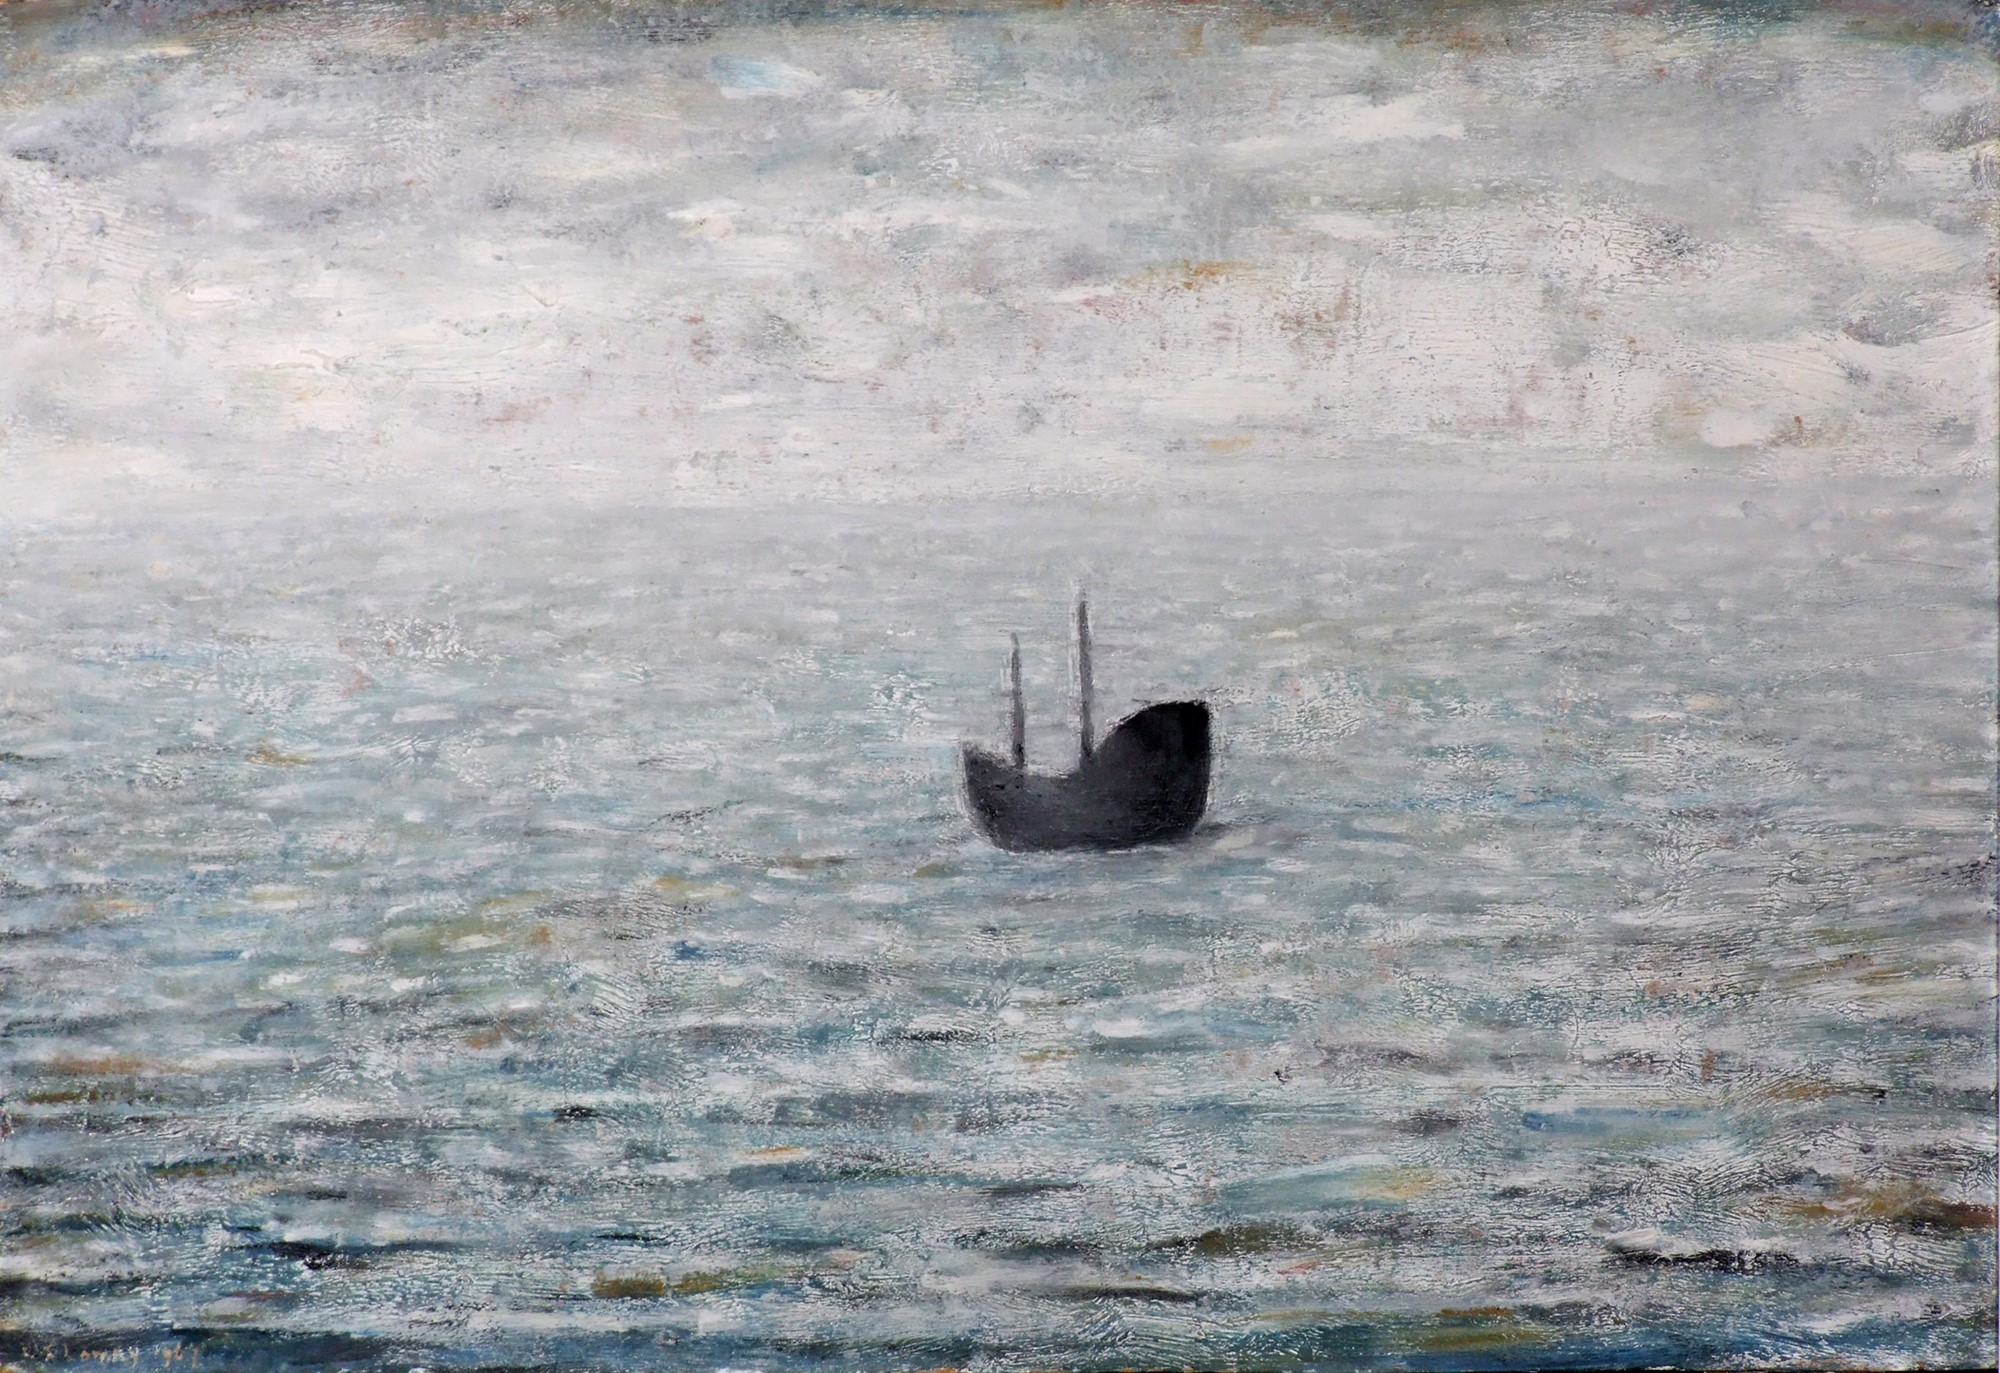 Lowry Boat at Sea